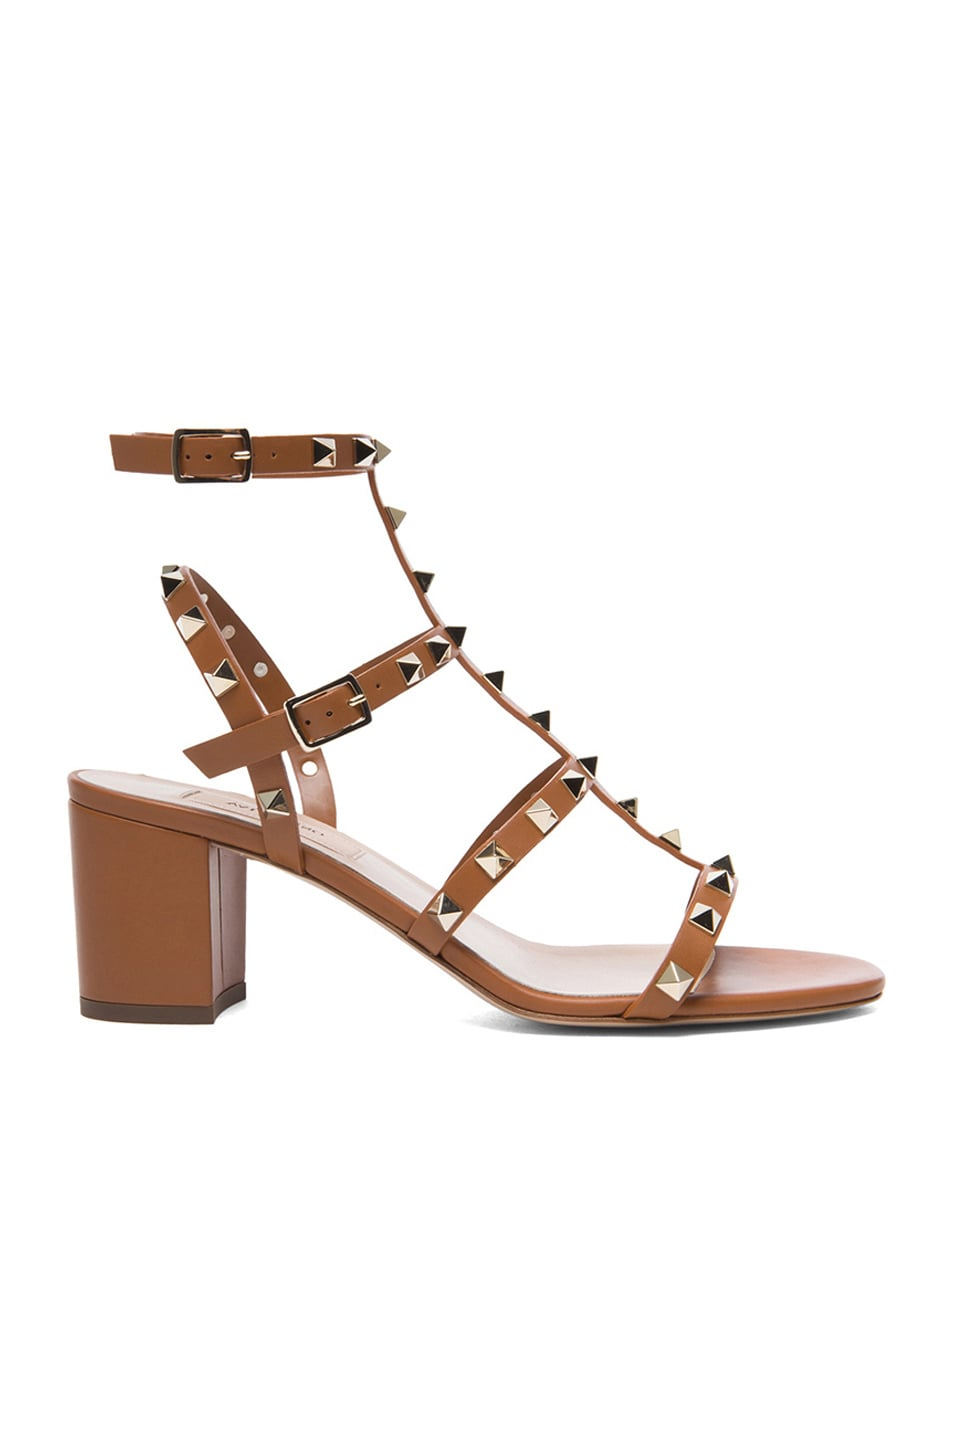 37a2f2fb1901 Image 1 of Valentino Rockstud Leather Sandals T.60 in Light Cuir